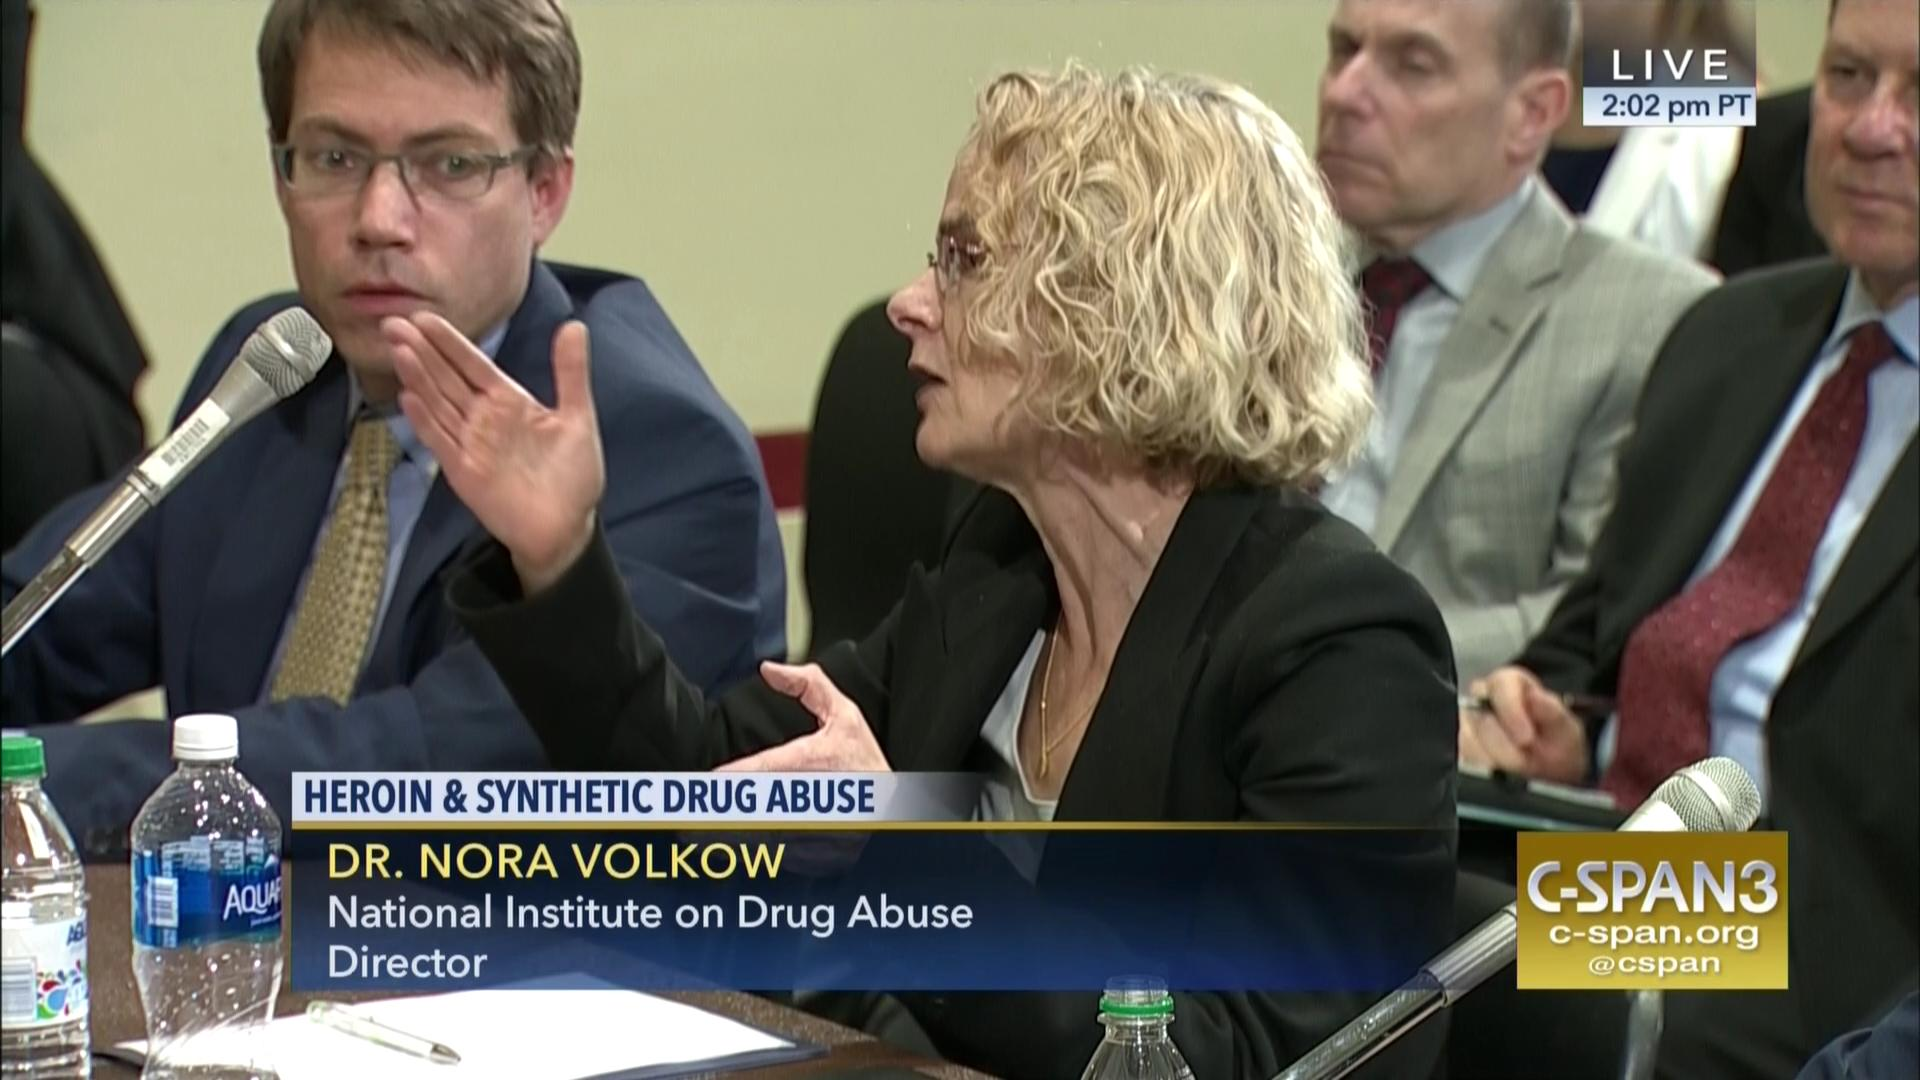 Rep Norcross Heroin Synthetic Drug Abuse Hearing C Span